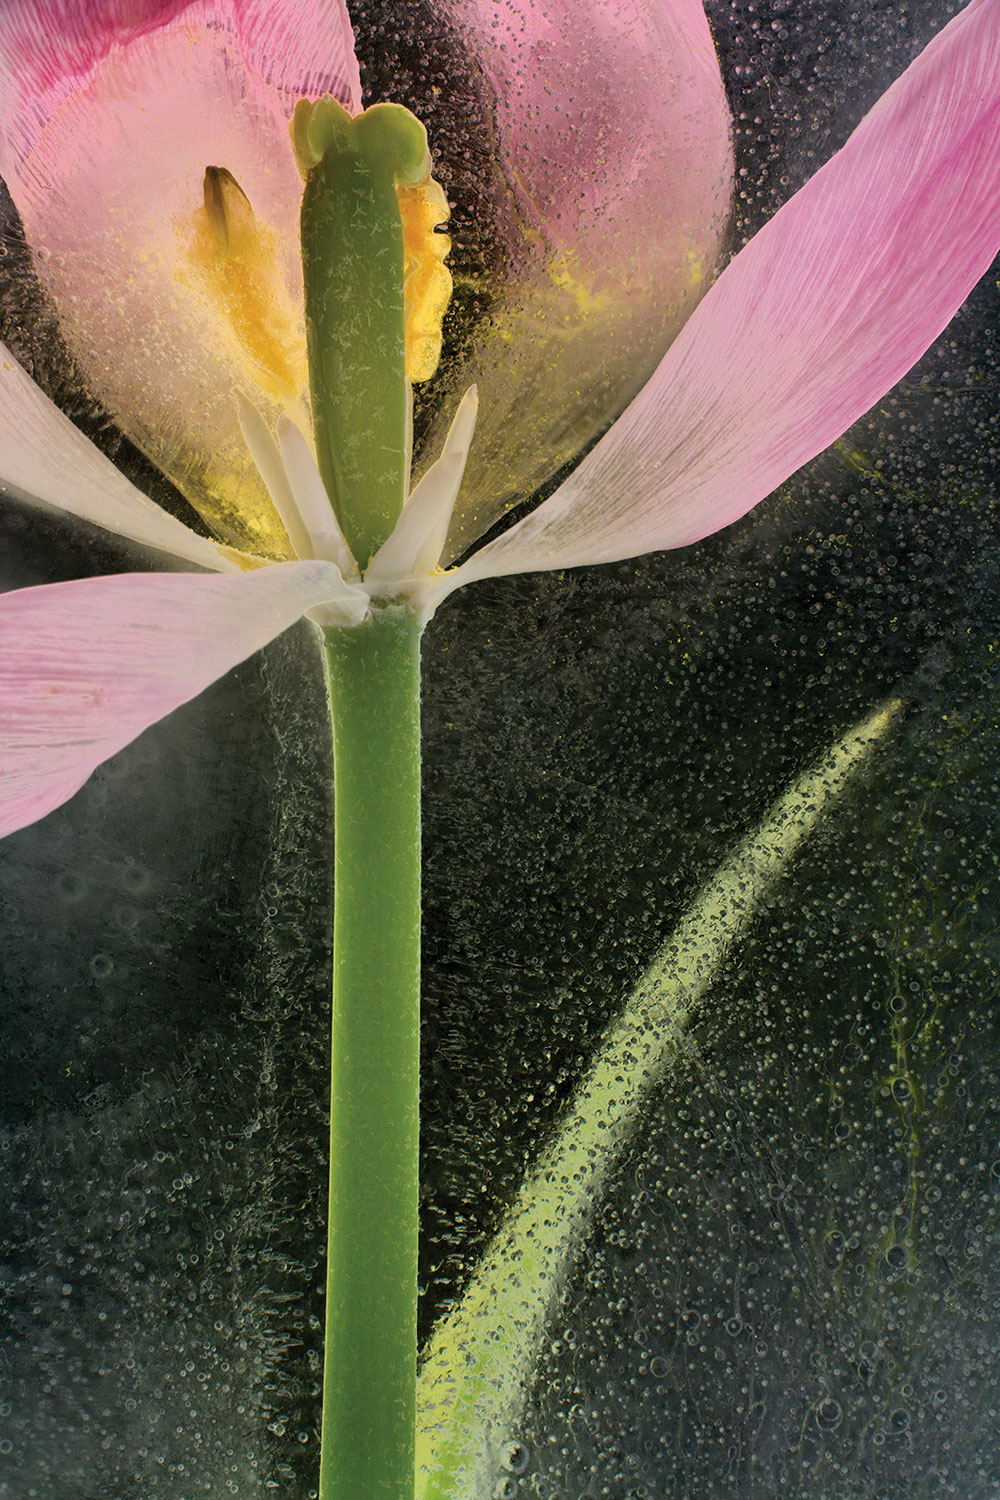 Tulip in photographed in ice, inverted luminosity